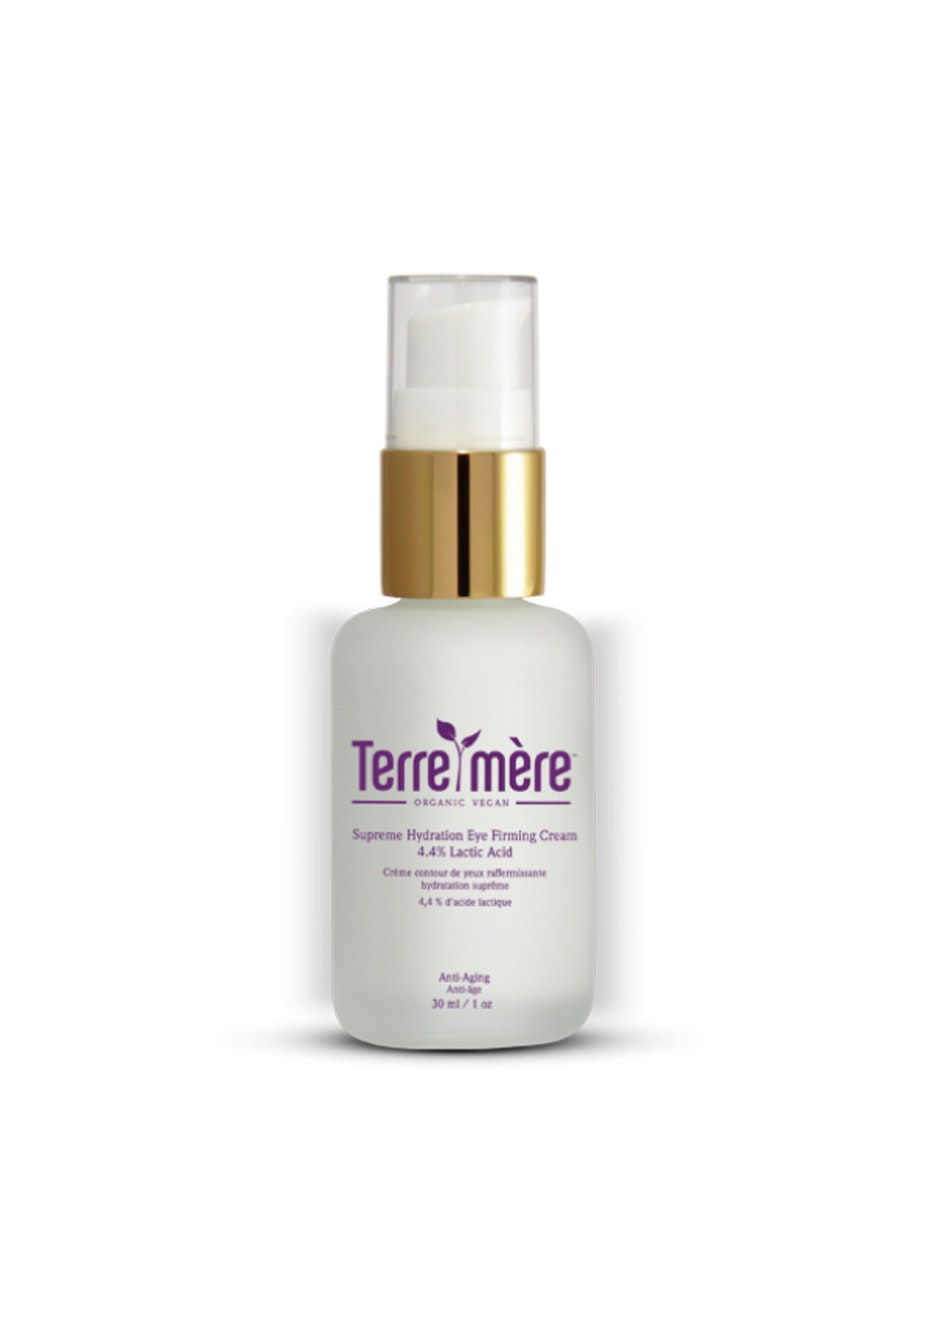 Terre Mere - Supreme Hydration Eye Firming Cream - 4.4% Lactic Acid